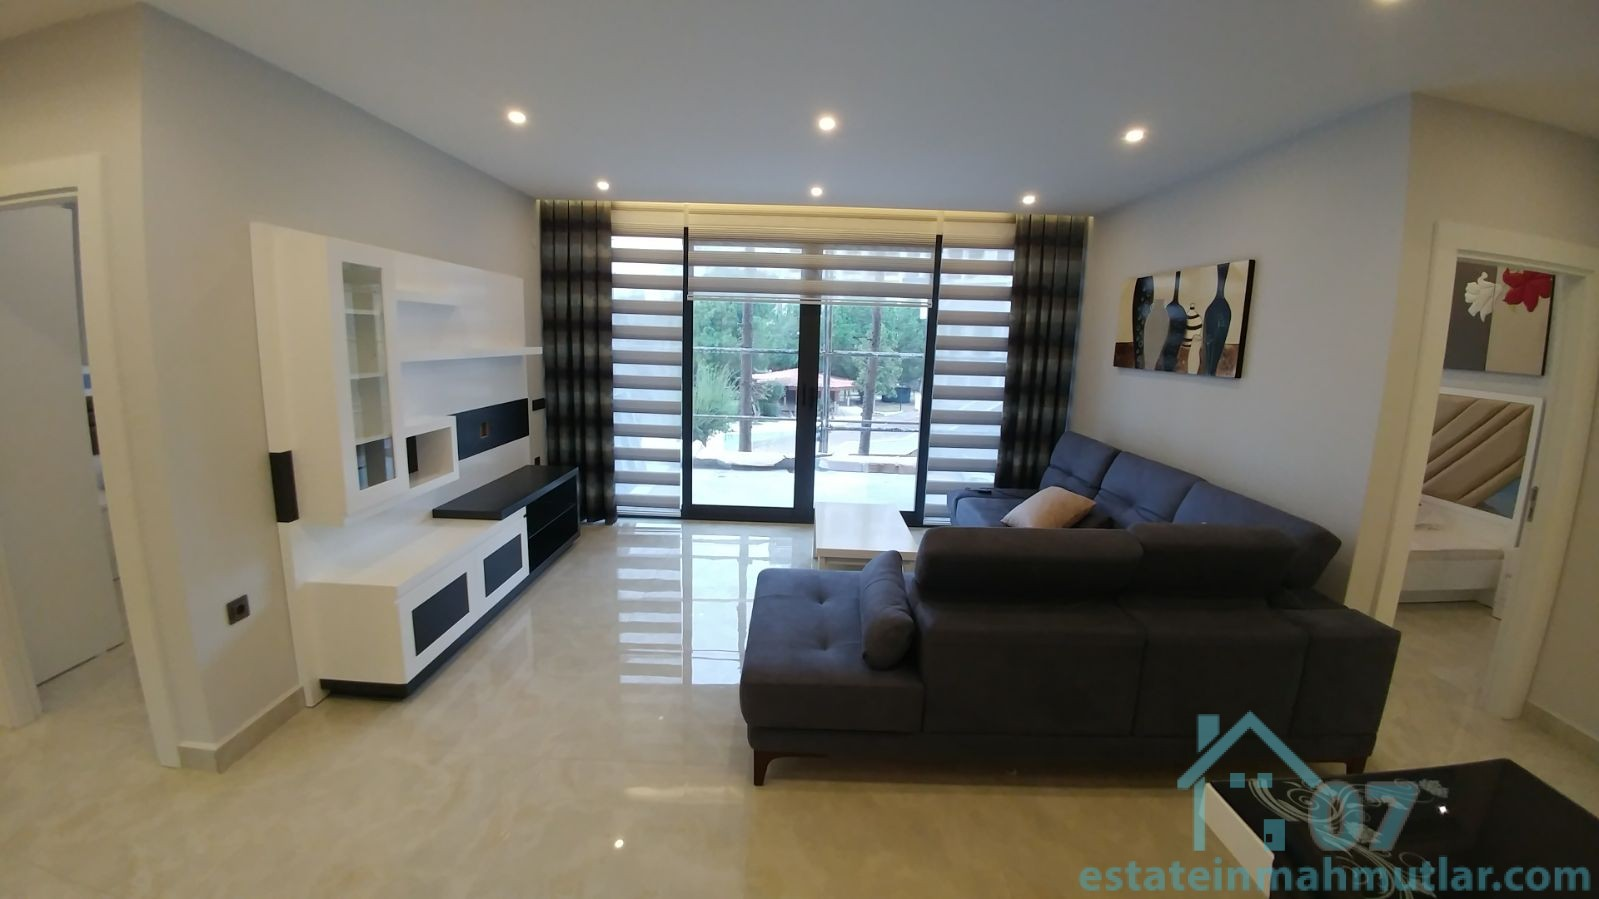 Three Bedroom SEASIDE Duplexes In A Luxurious Complex Right By The Sea!